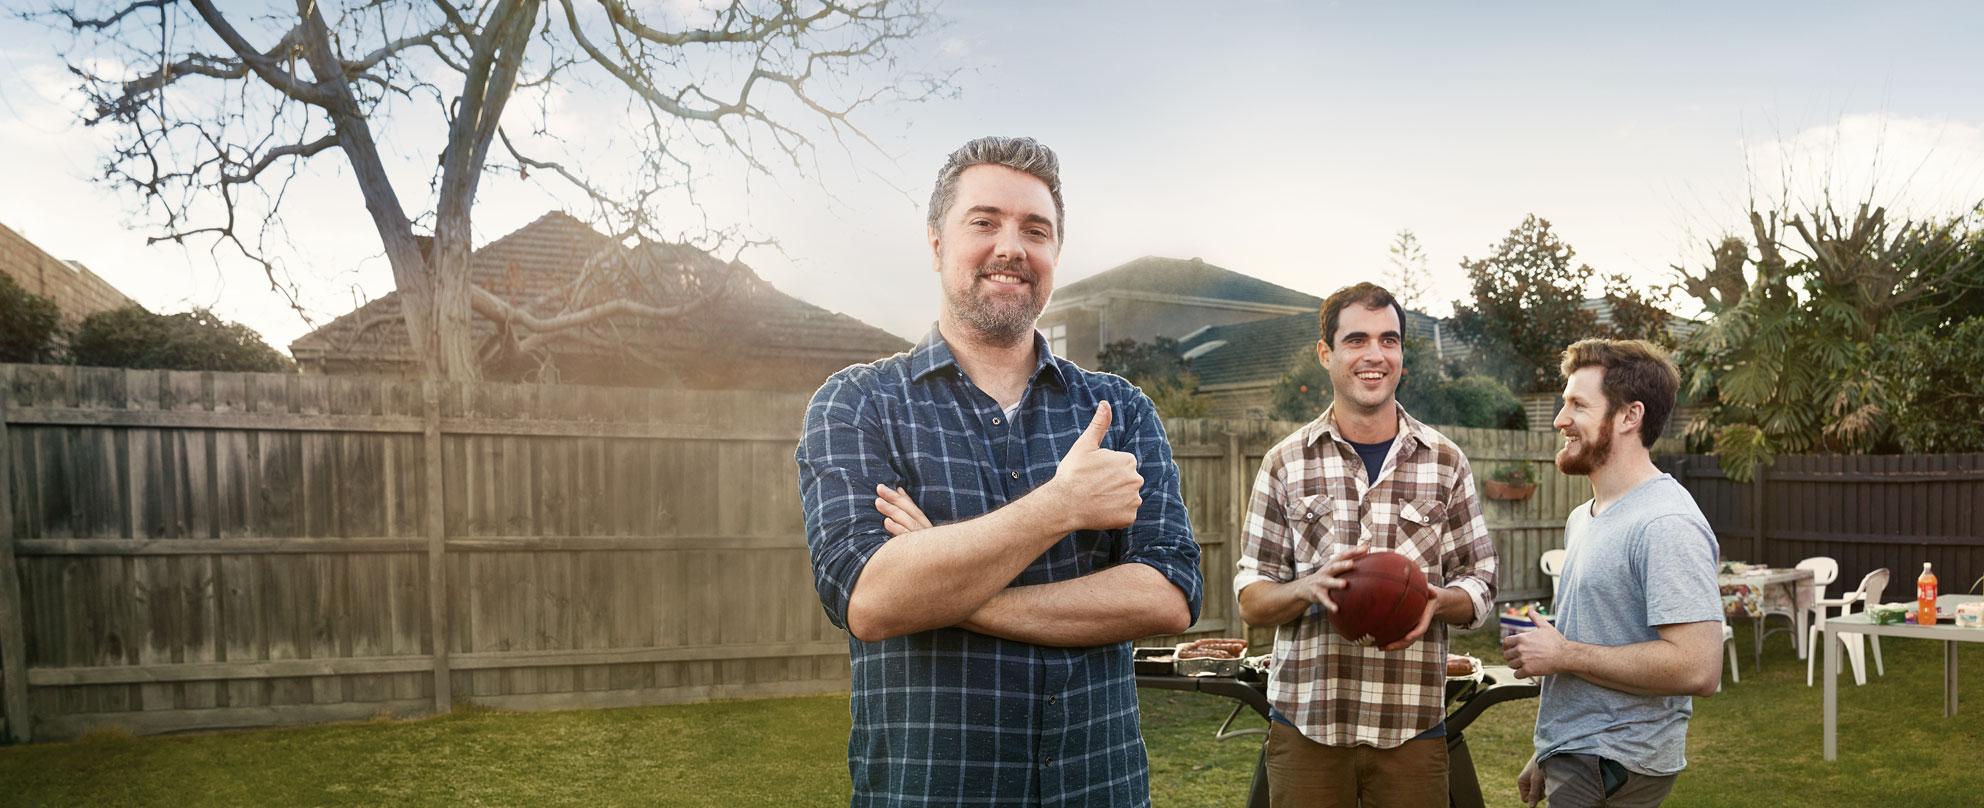 Three men at a barbeque in a suburban backyard - one man in the foreground giving the thumbs-up, while the two others chat in the background, one holding a football